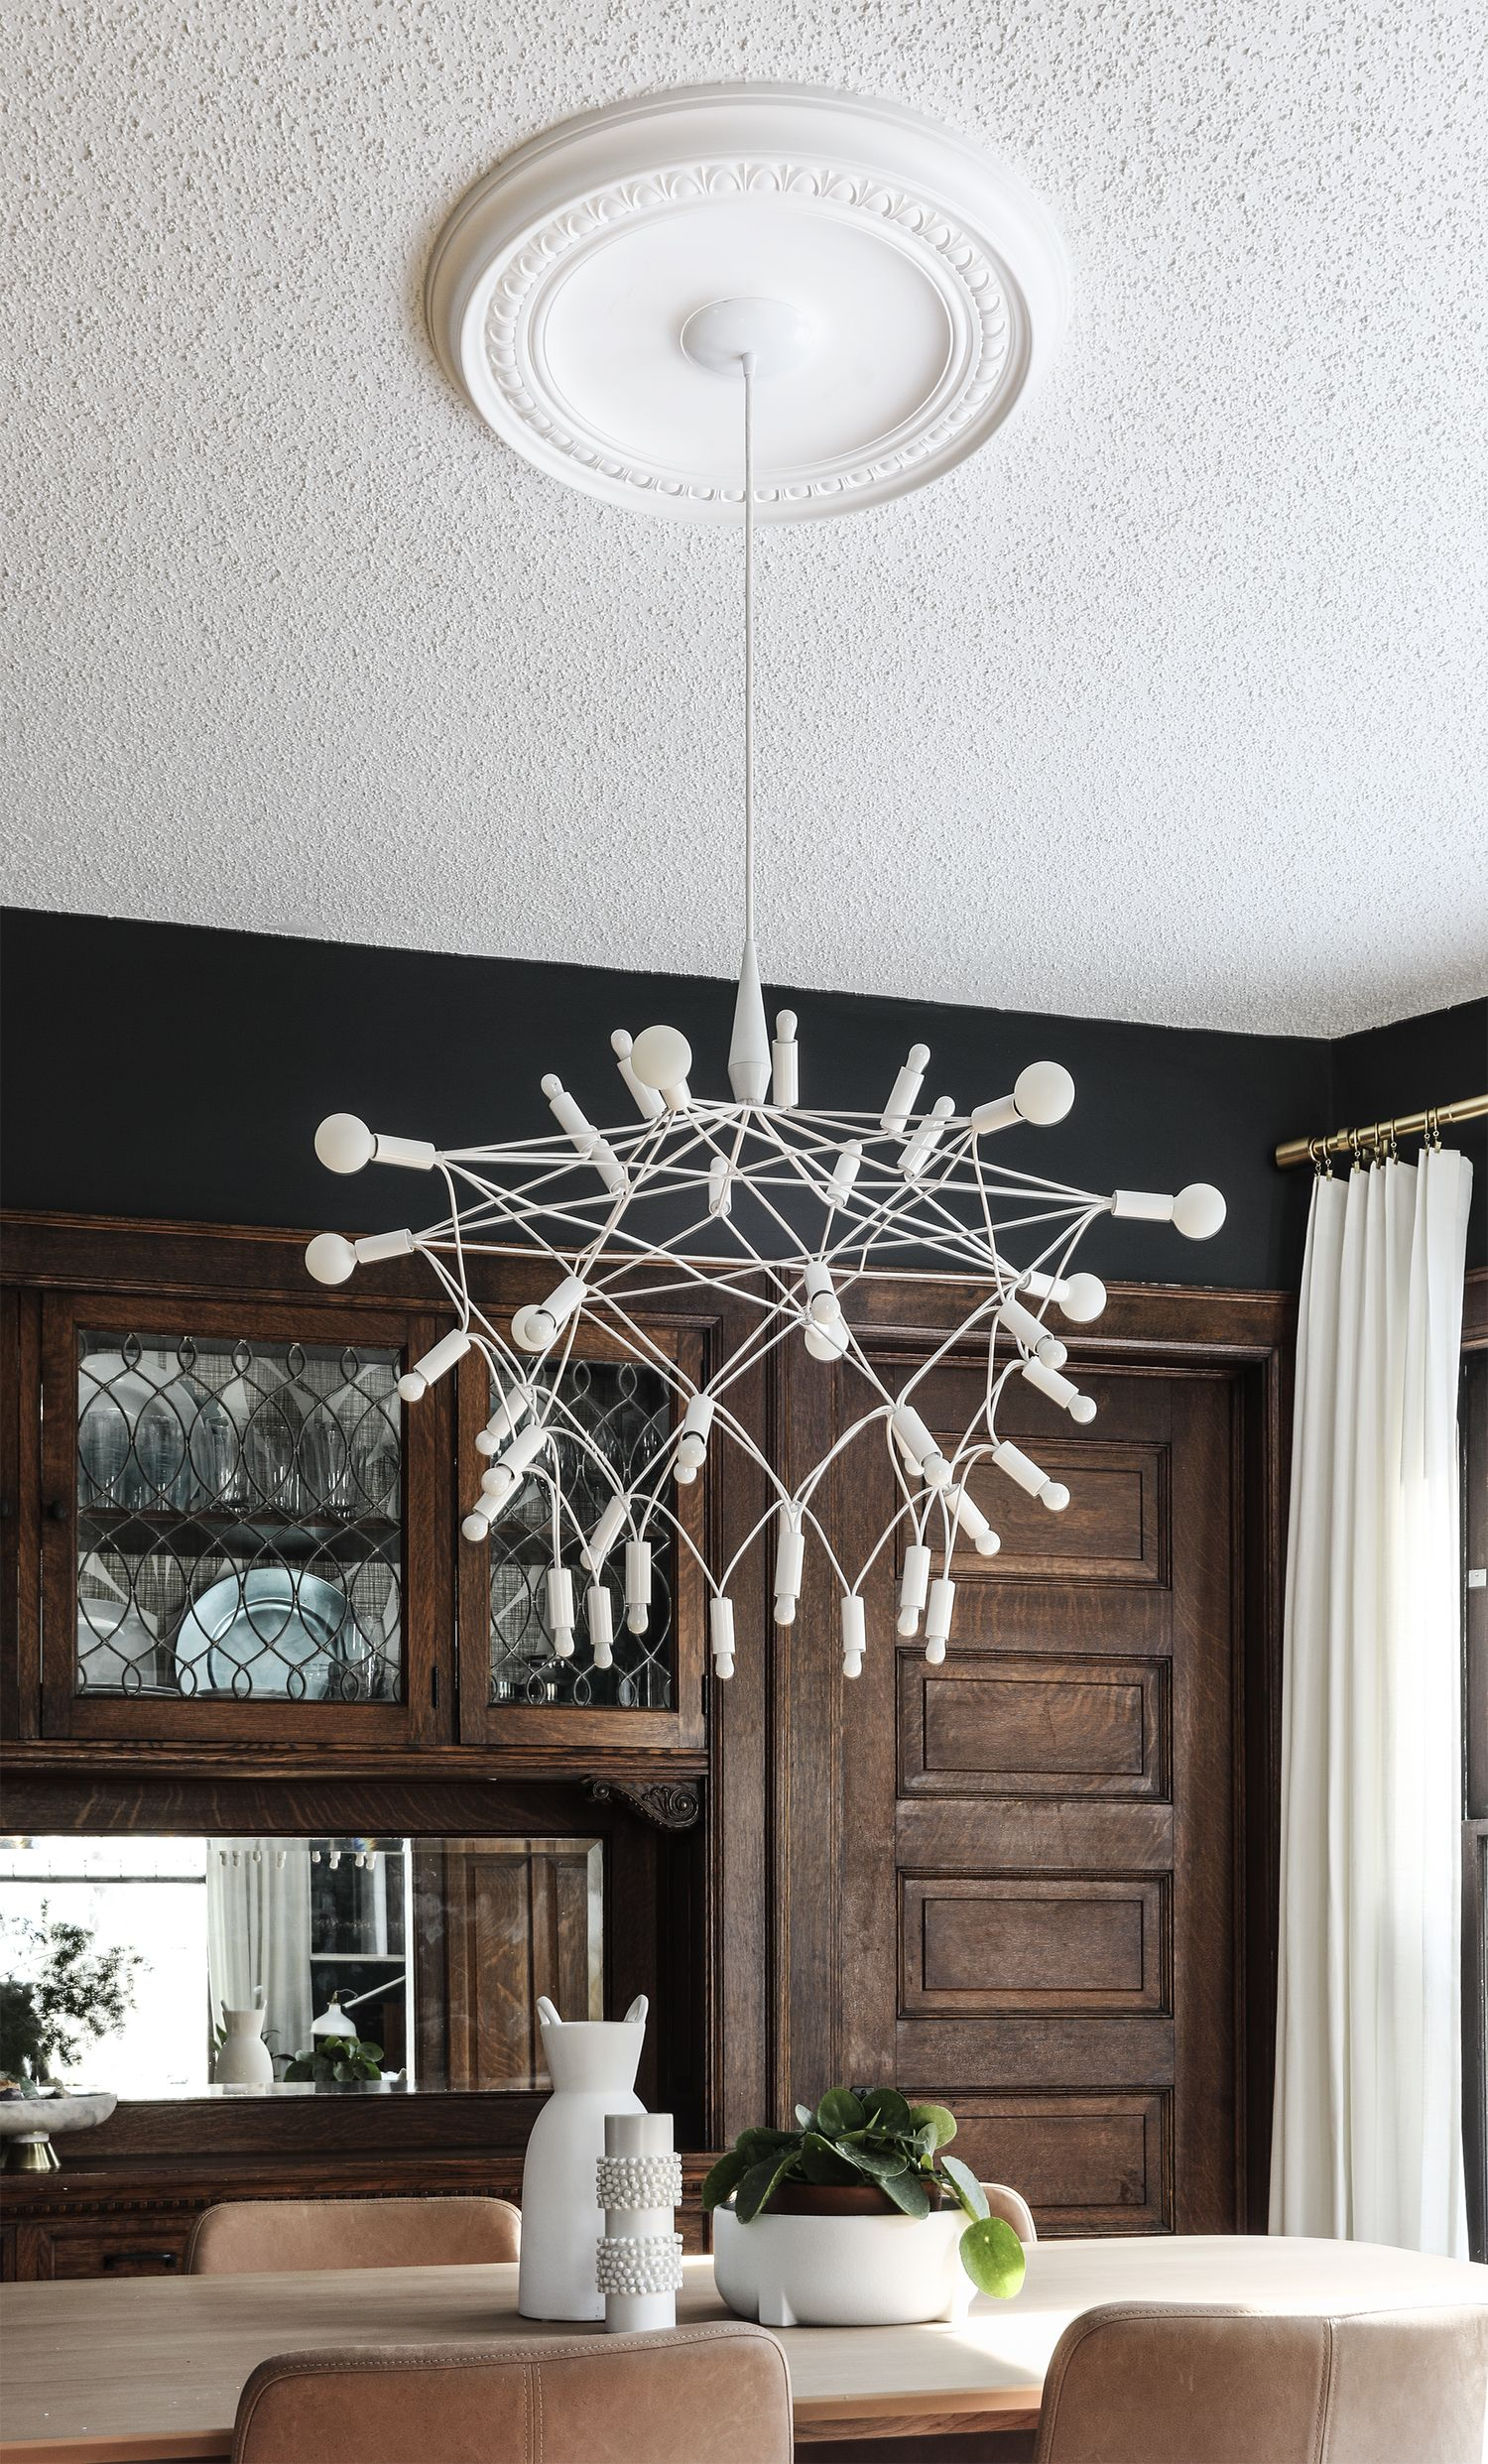 14 best images about ceiling medallion on Pinterest ...